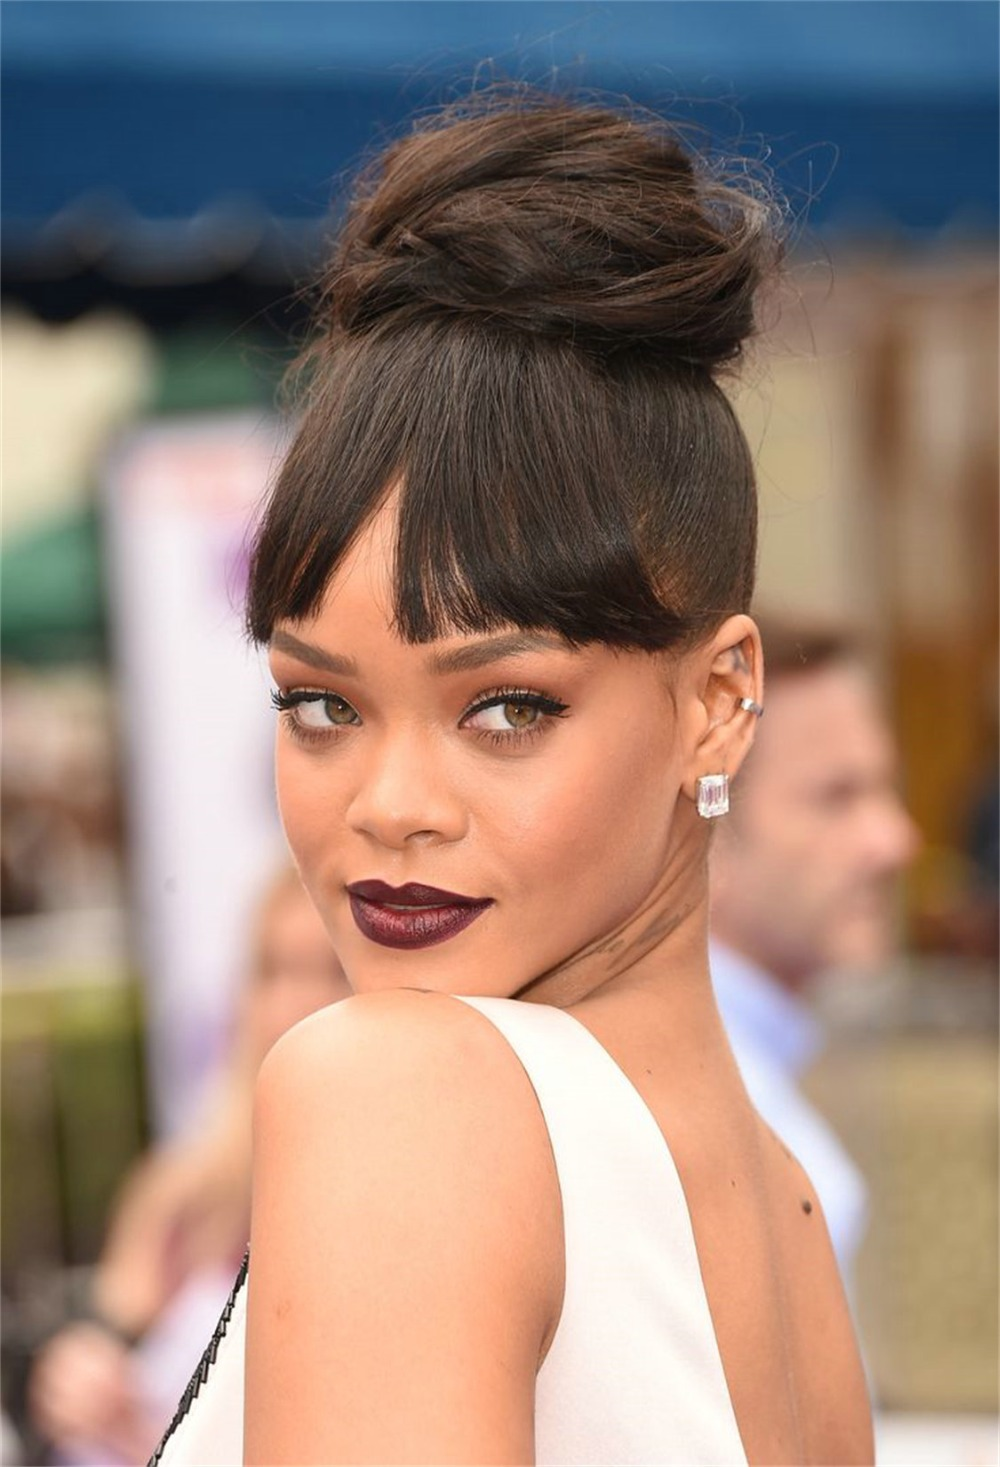 Rihanna Clip In Black Straight Human Hair Fringe Or Bangs Extension From Extensions Wigs On Aliexpress